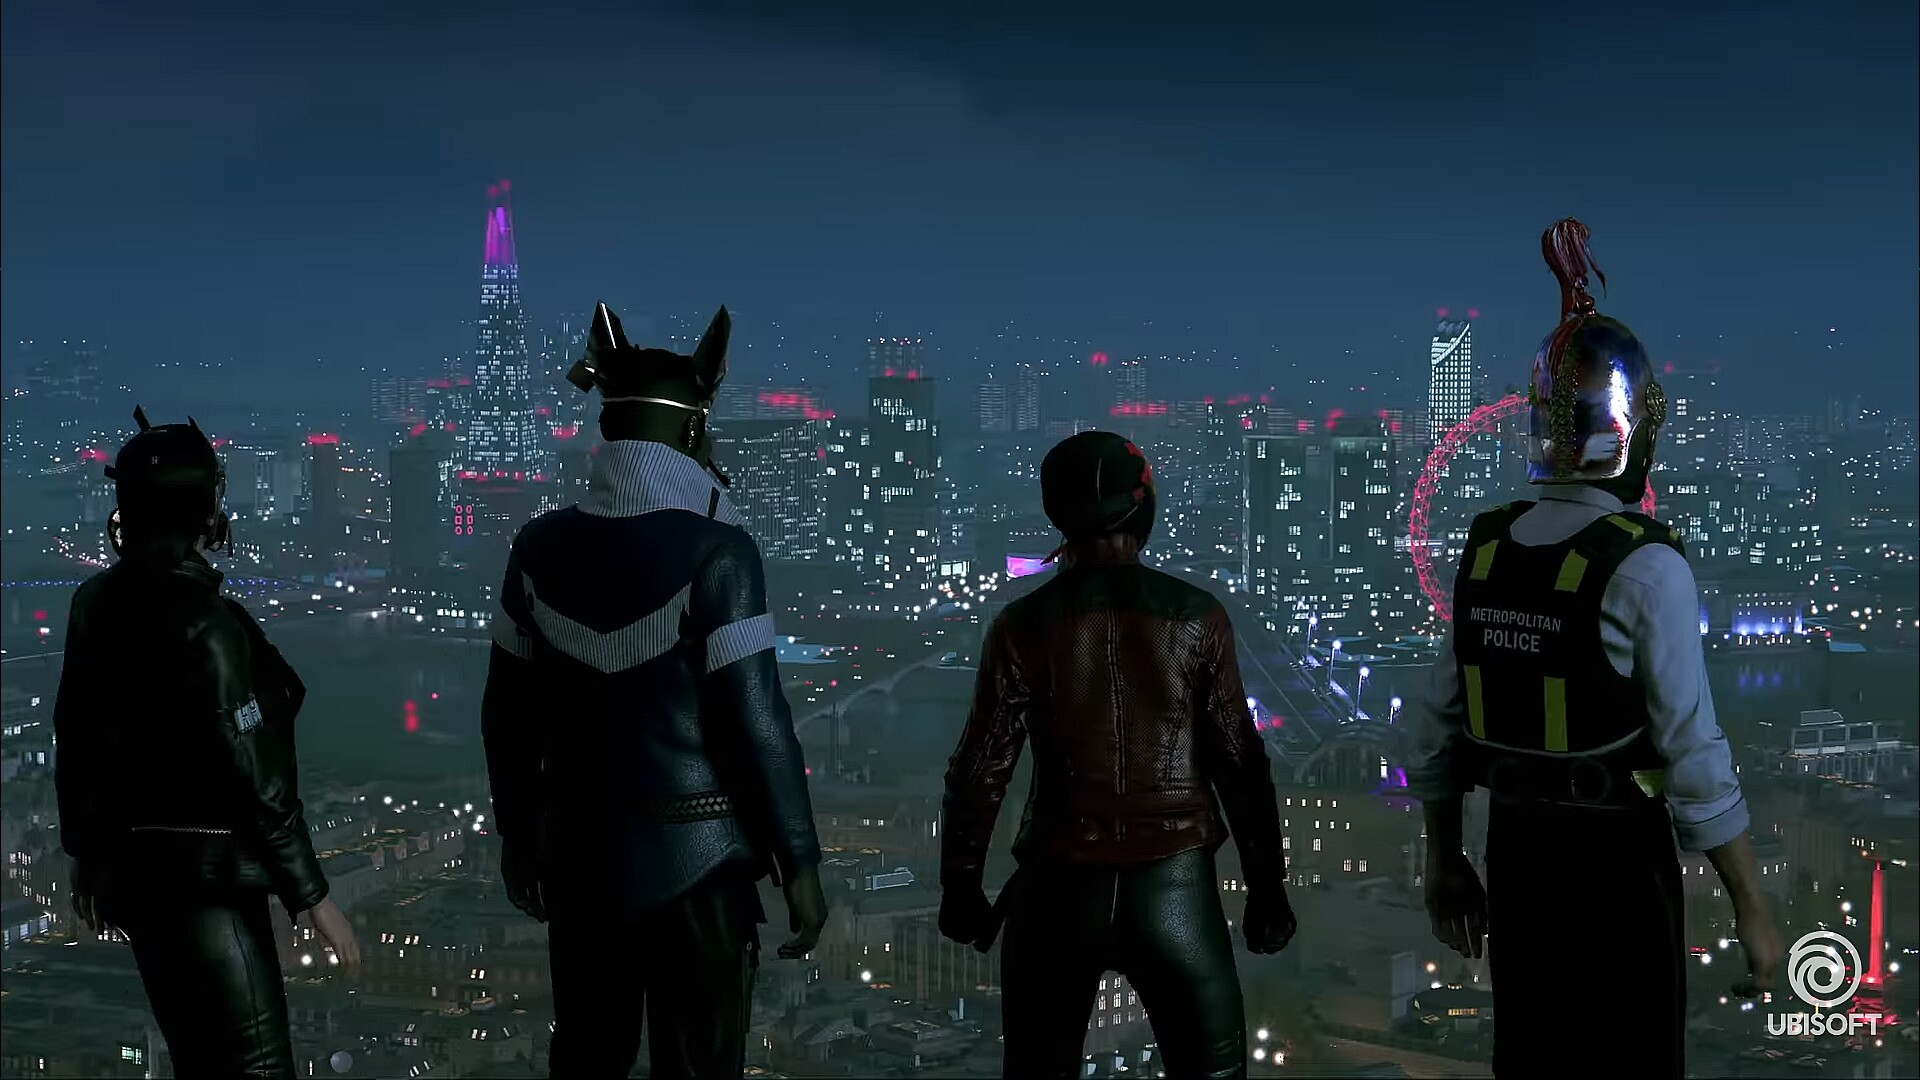 Watch Dogs Legion Raytraced Reflections Actually Require RTX 3080 GPU and DLSS Performance Mode at 4K-Ultra